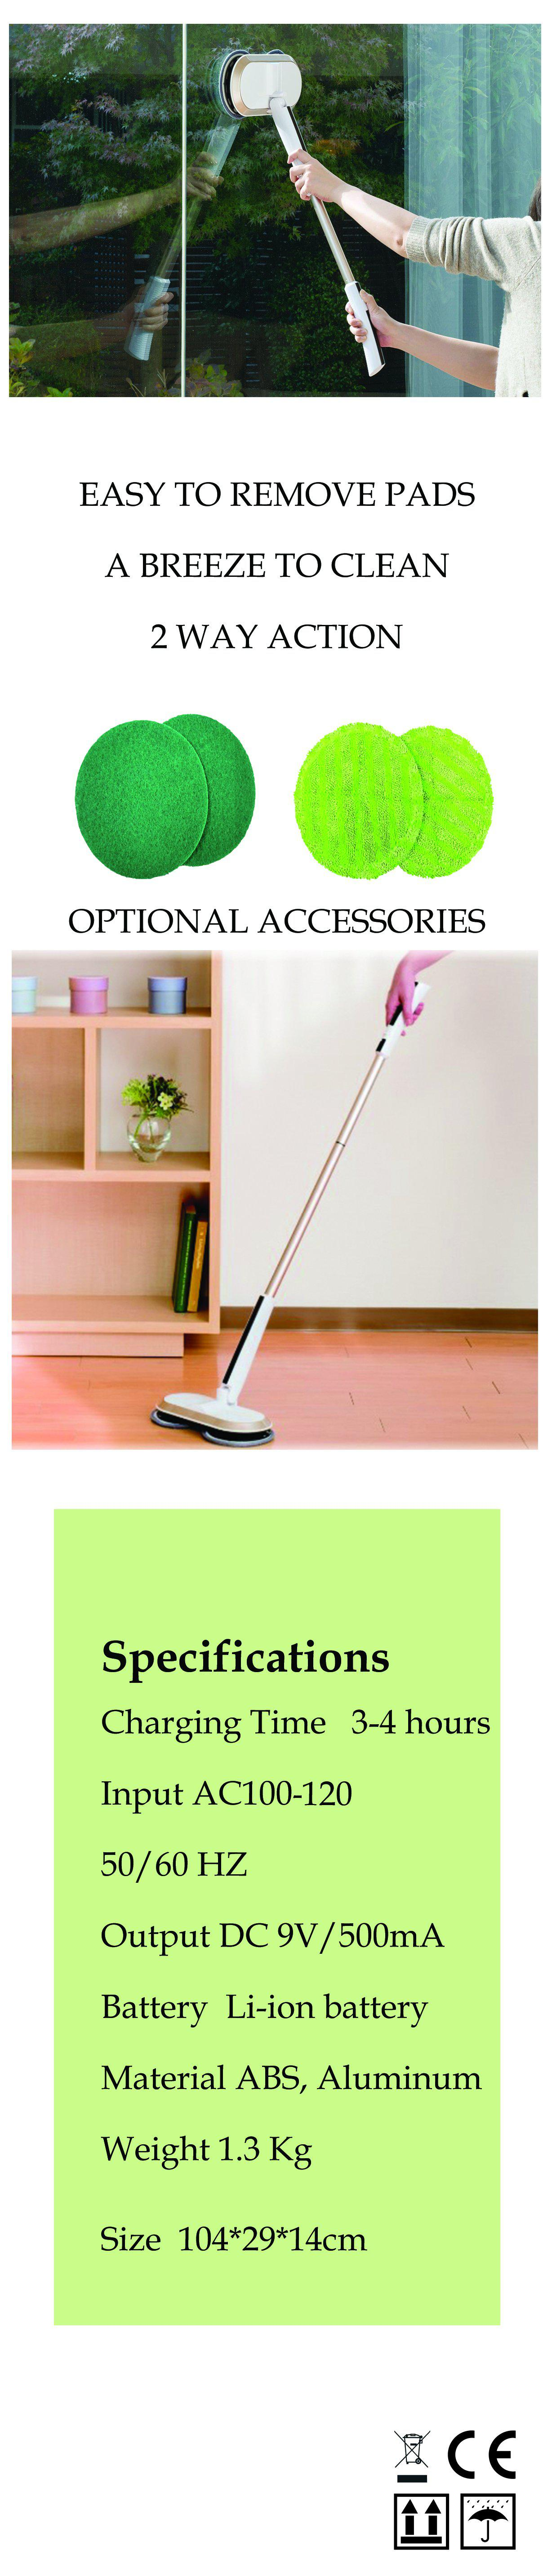 Rocket Electric Mop